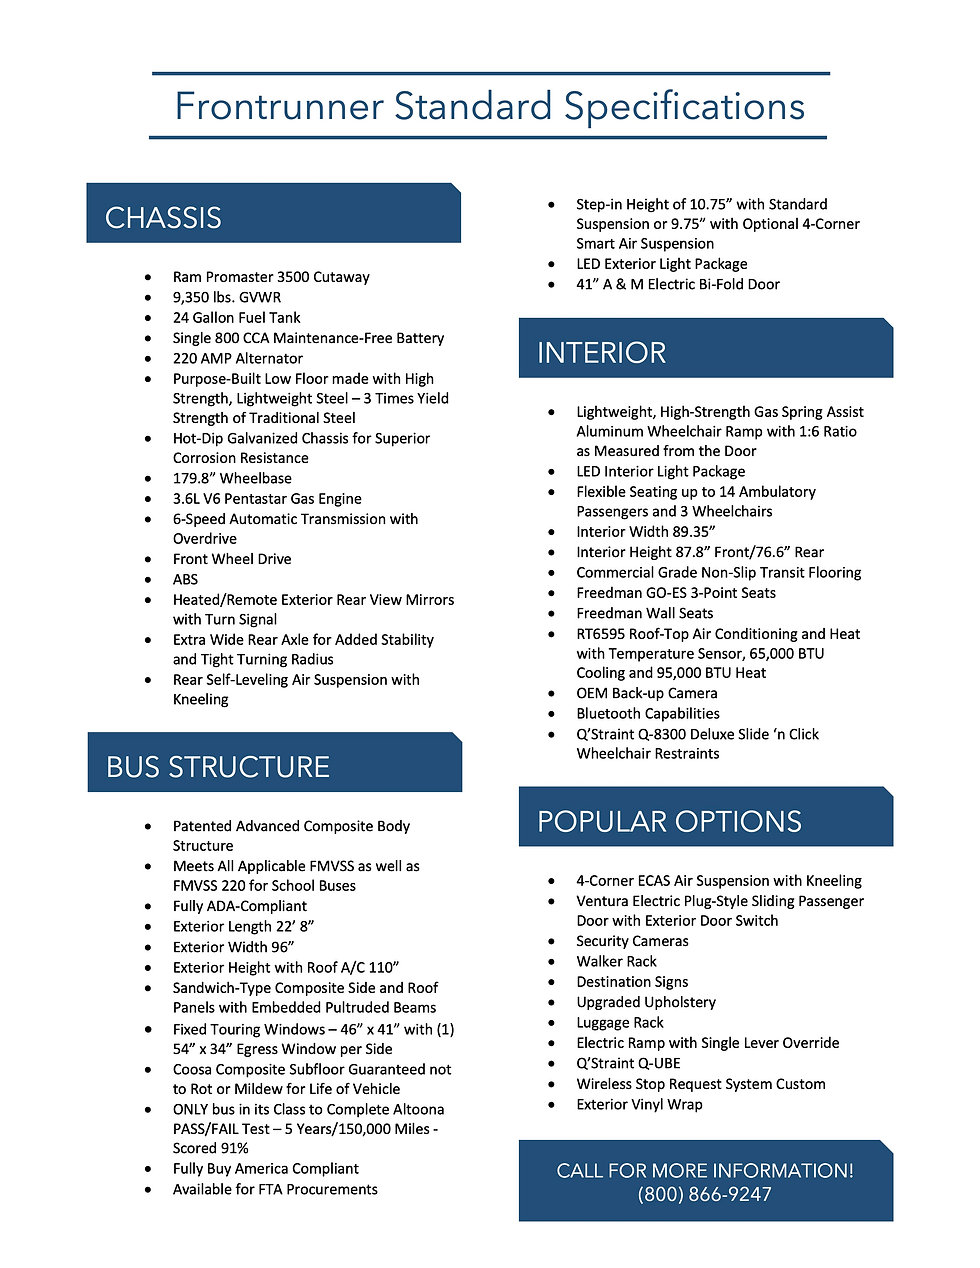 Frontrunner 1-Page Specifications 6.9.21.jpg